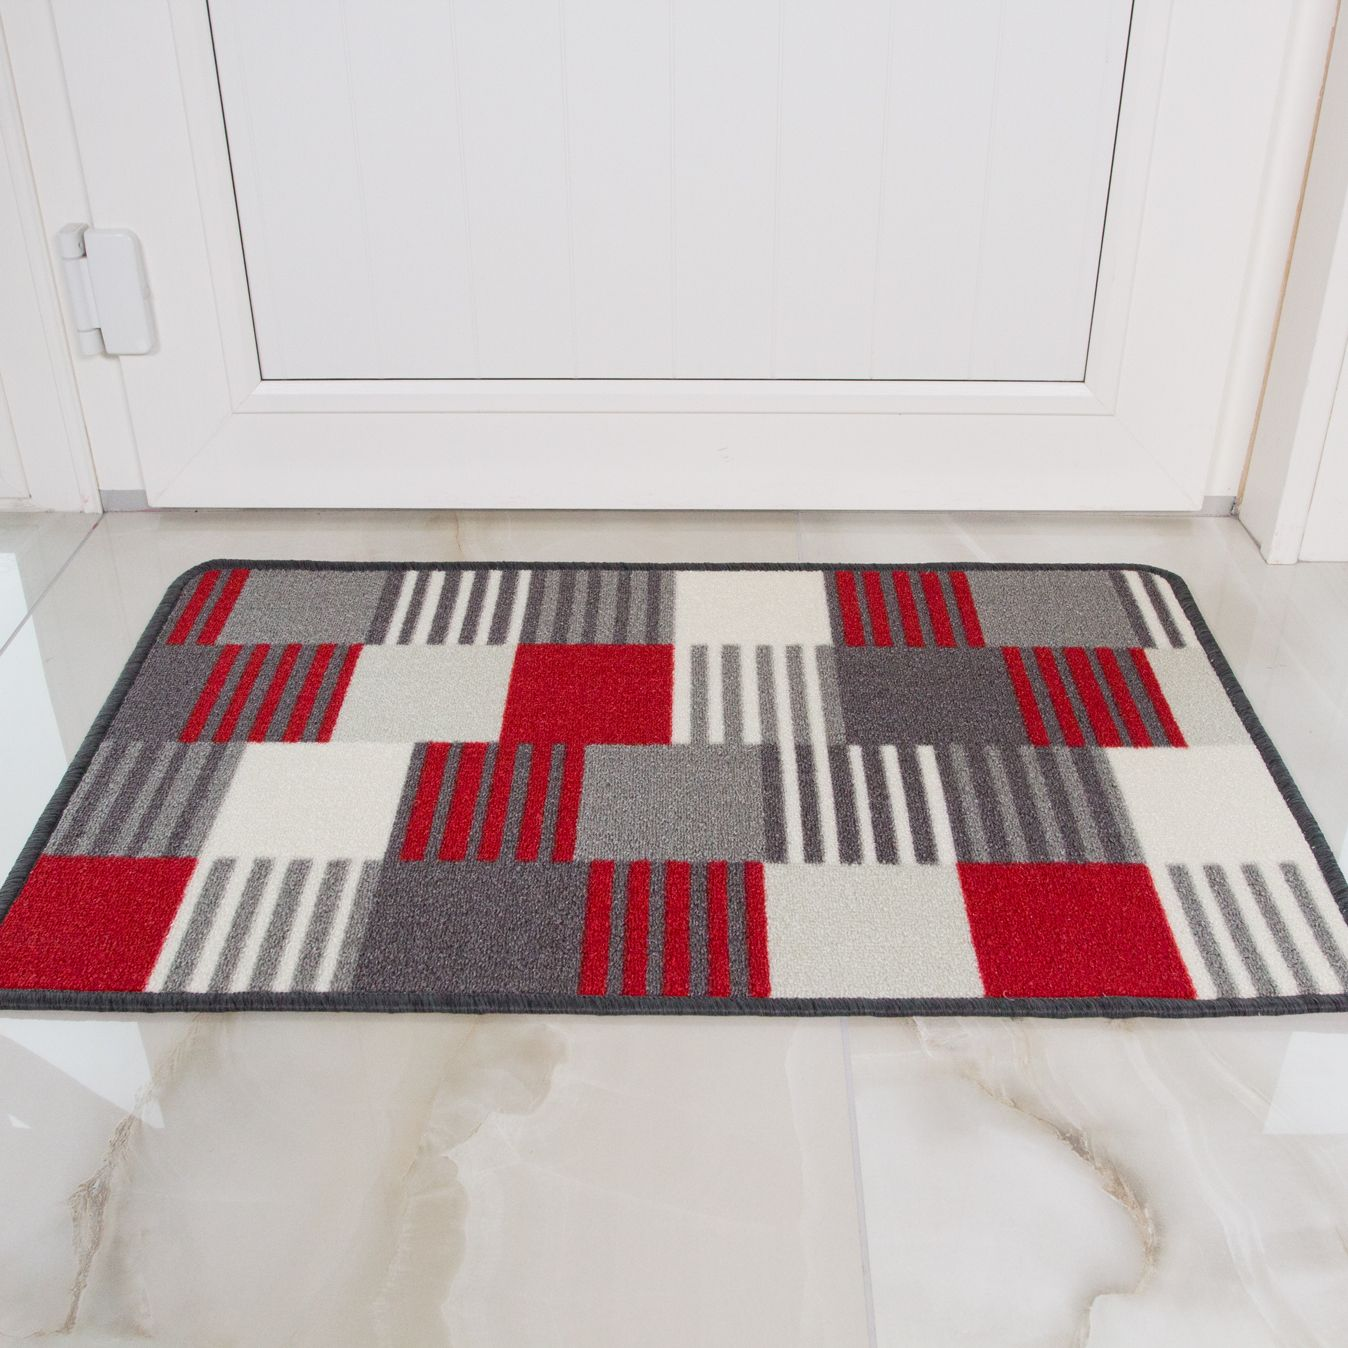 Clean Bath Mats With Rubber Backing